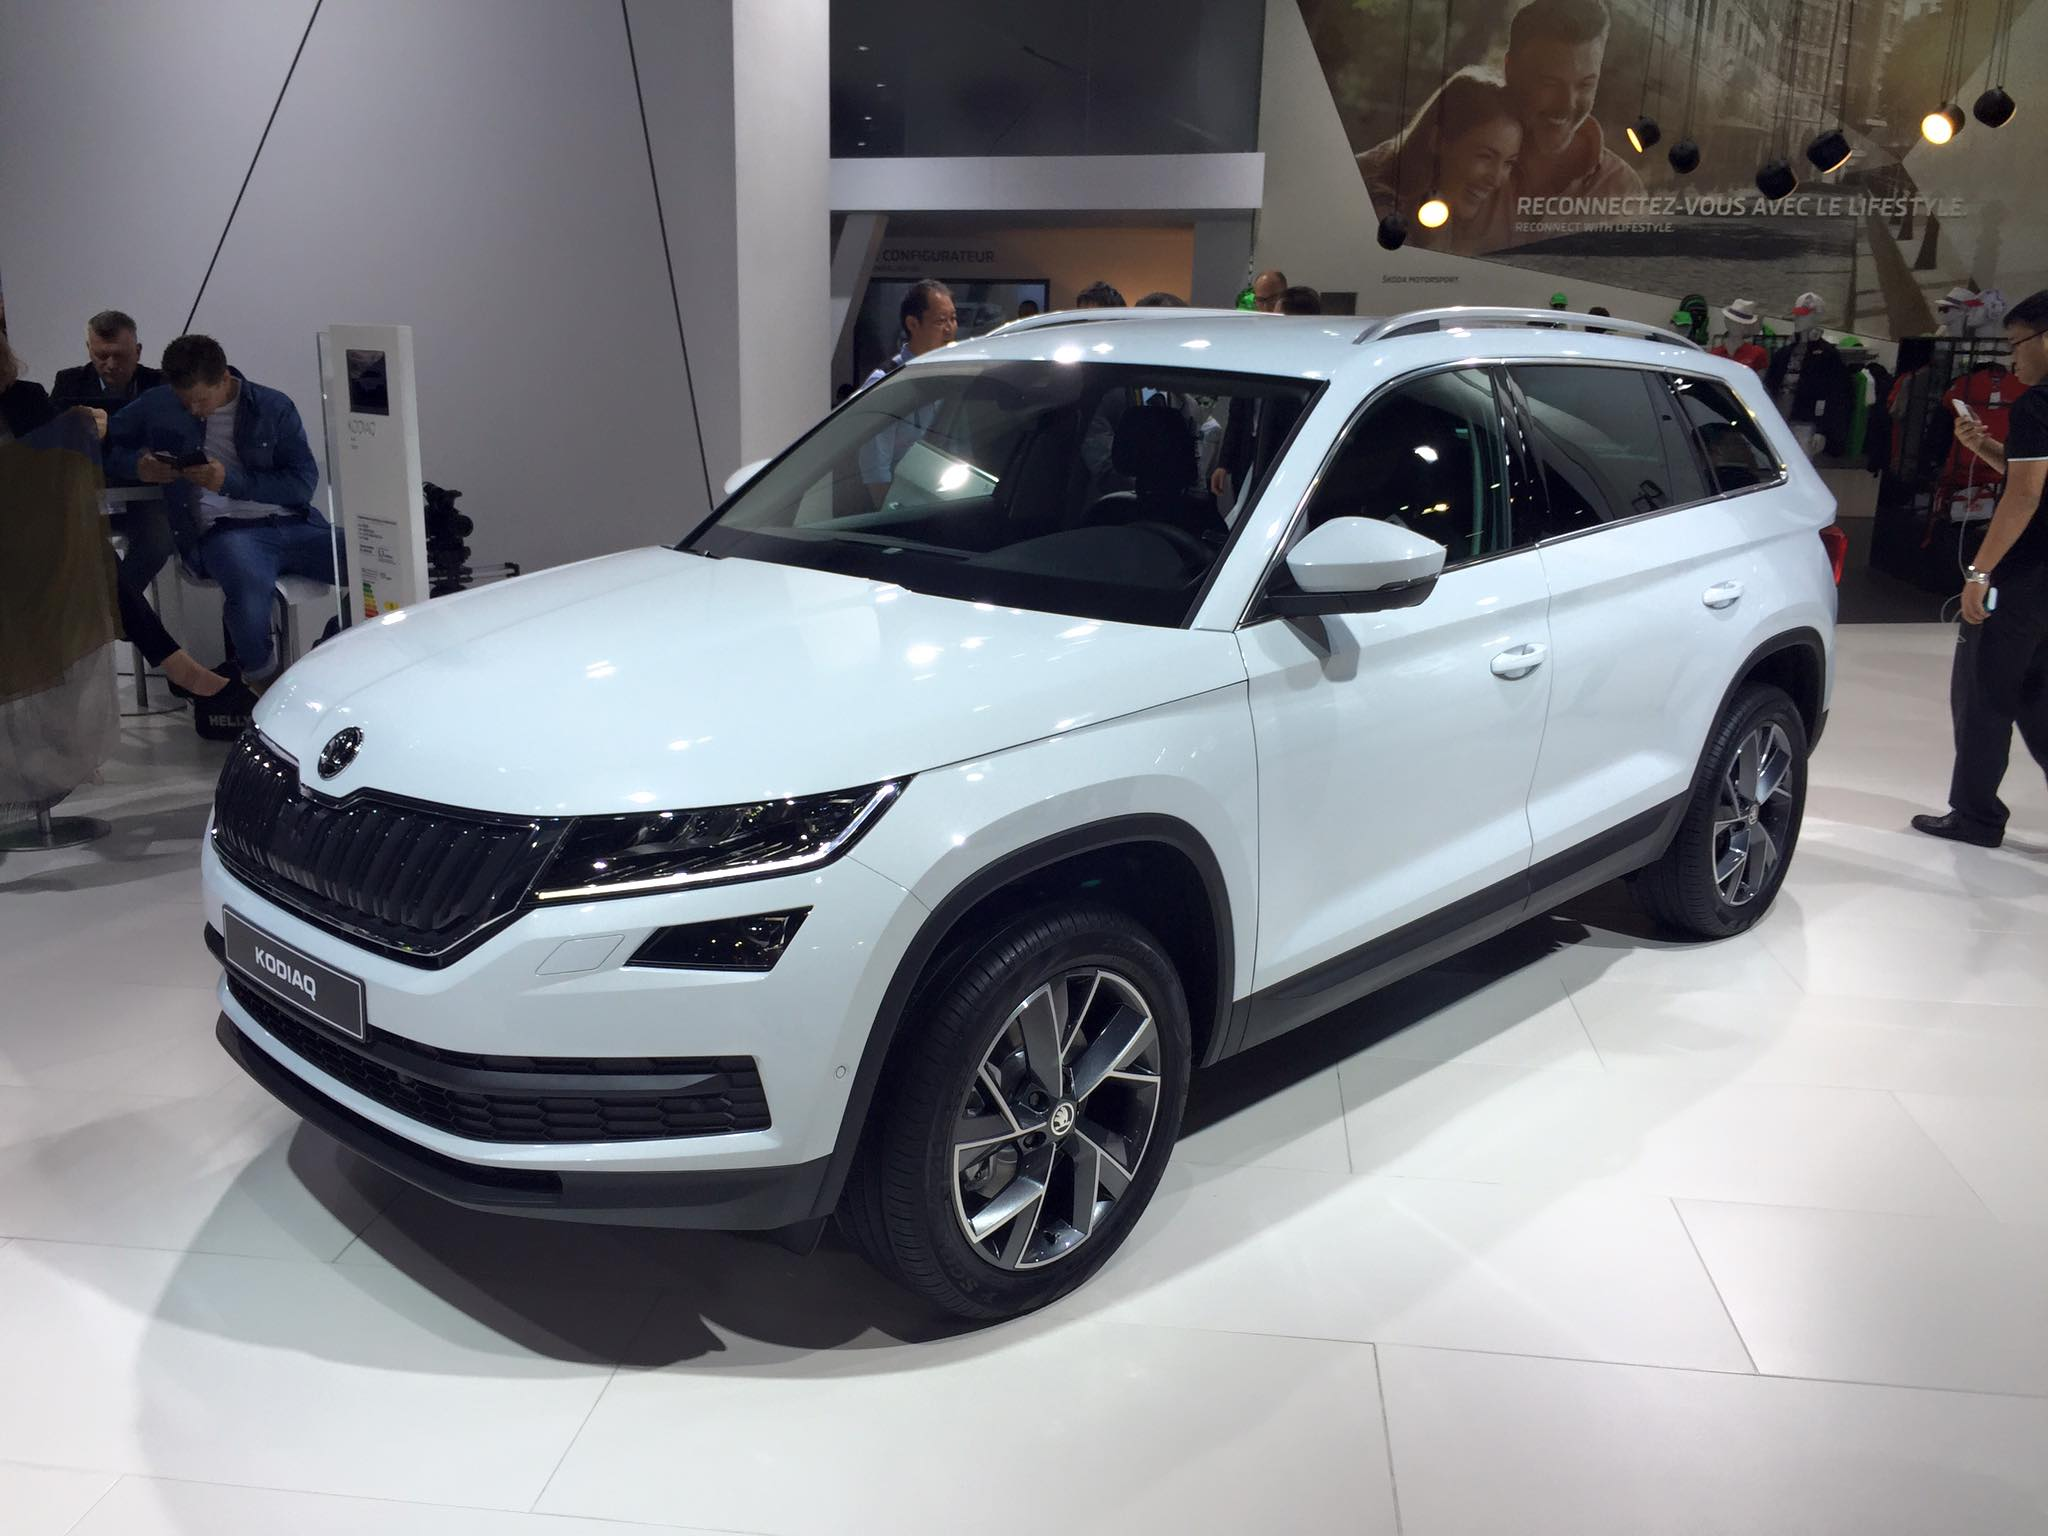 skoda kodiaq 4x4 salone di parigi 2016 9 19. Black Bedroom Furniture Sets. Home Design Ideas